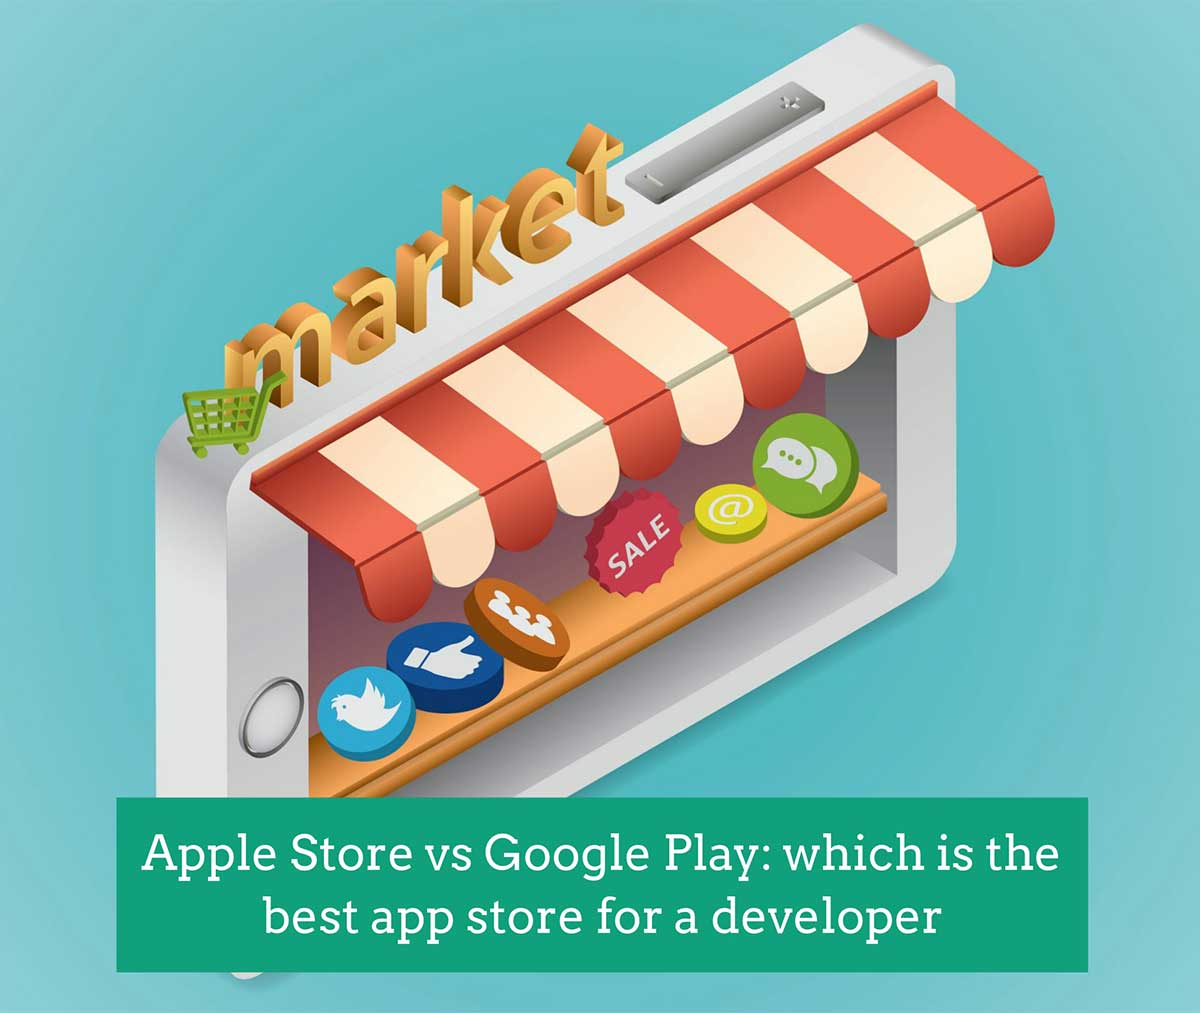 Apple Store vs Google Play: which is the best app store for a developer